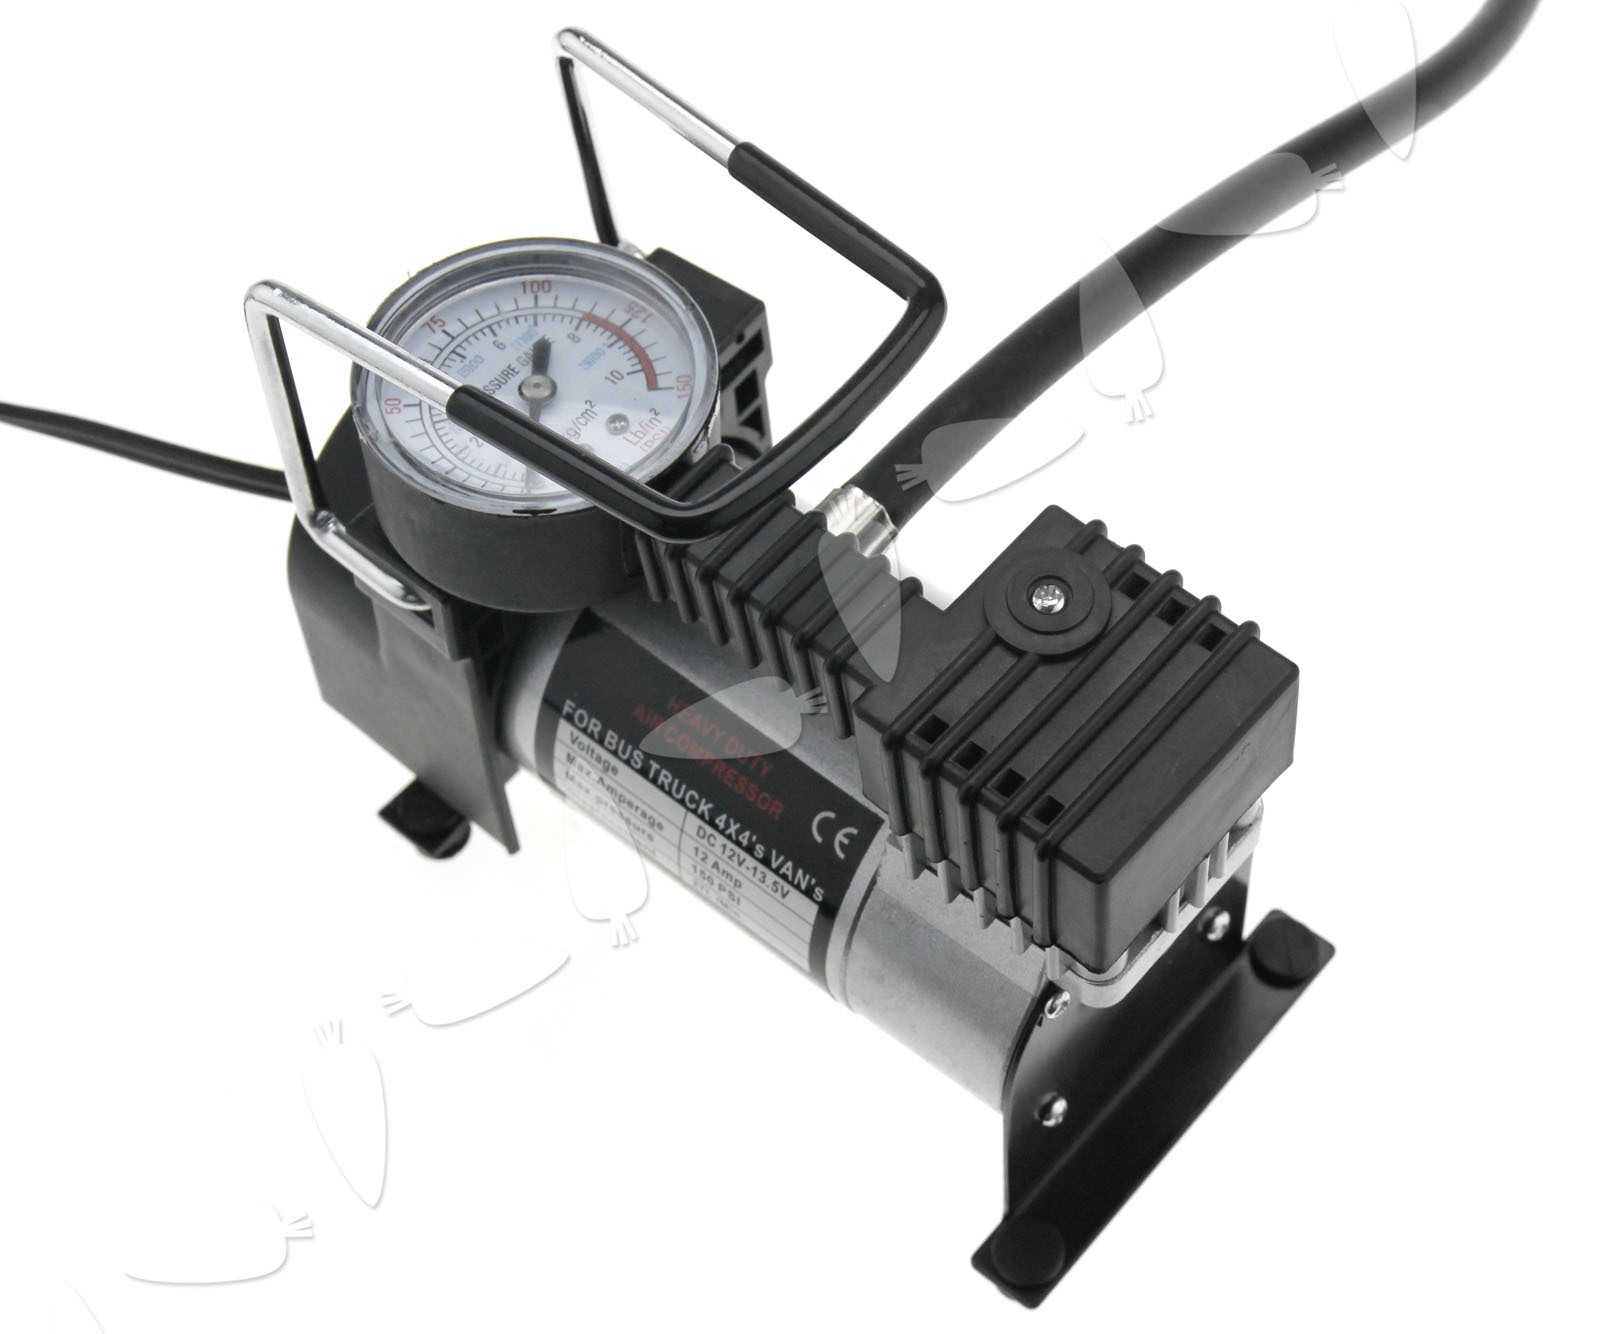 portable auto tire inflator car tyre air compressor pump 12v 150psi ebay. Black Bedroom Furniture Sets. Home Design Ideas